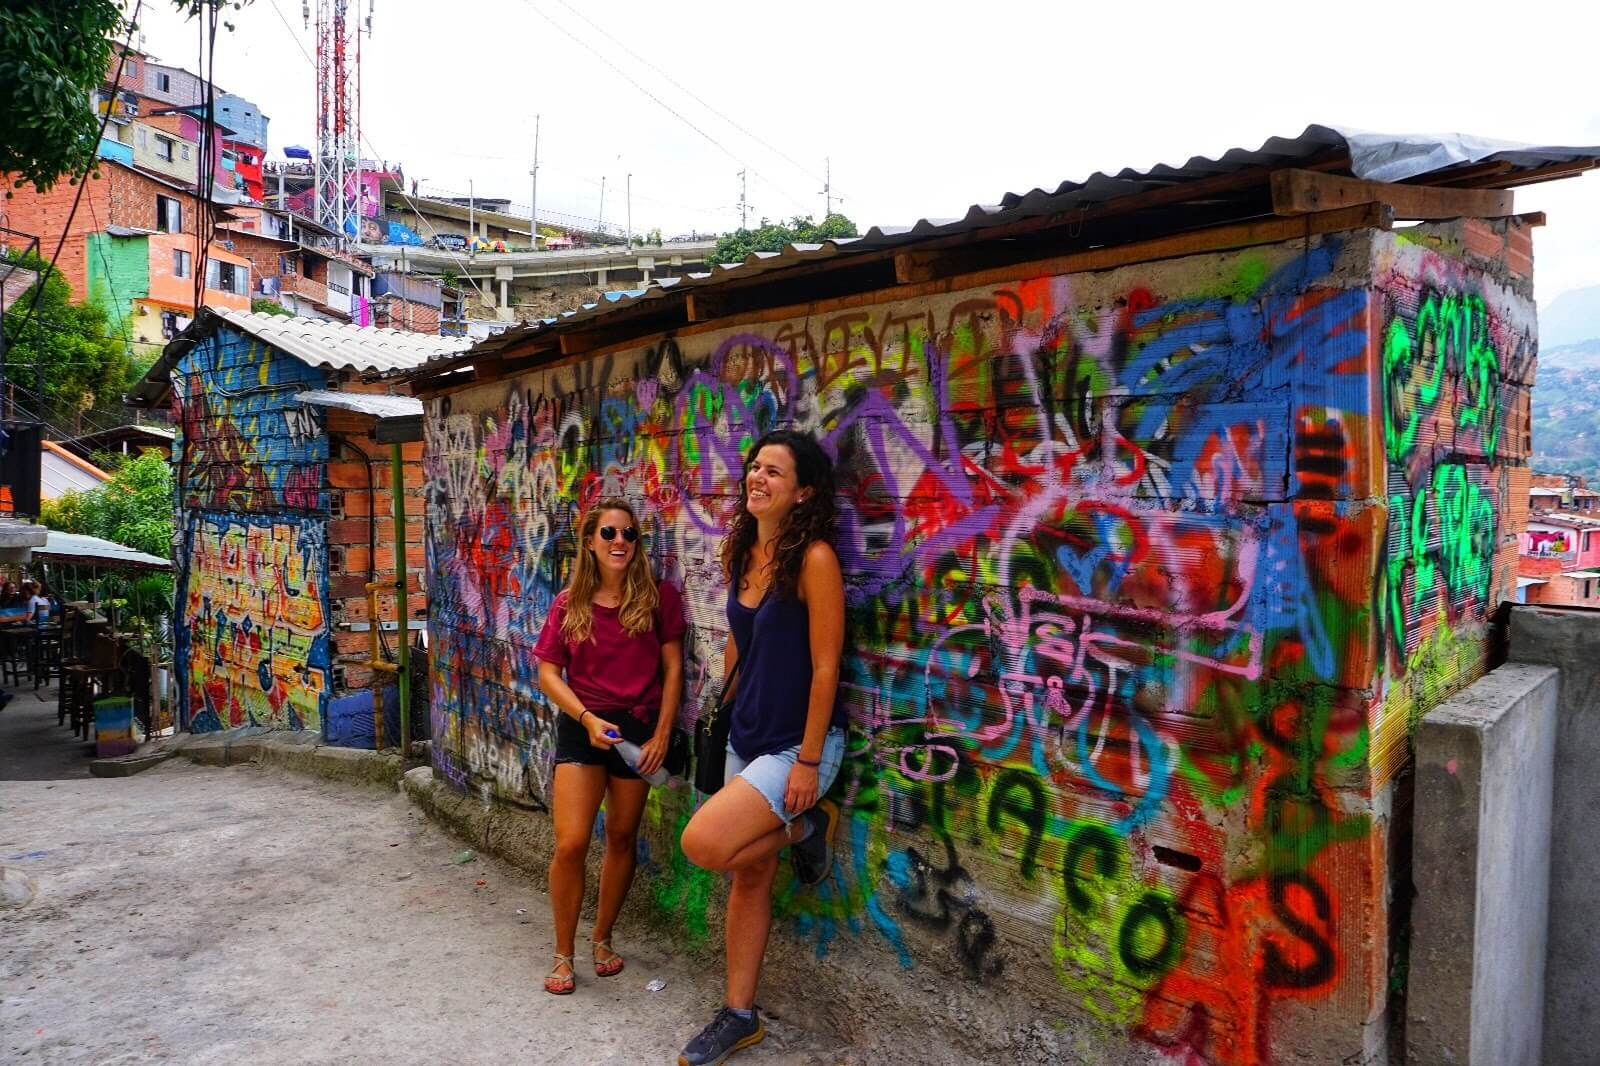 Two girls standing against a wall with colorful street art in Comuna 13, Medellin, Colombia